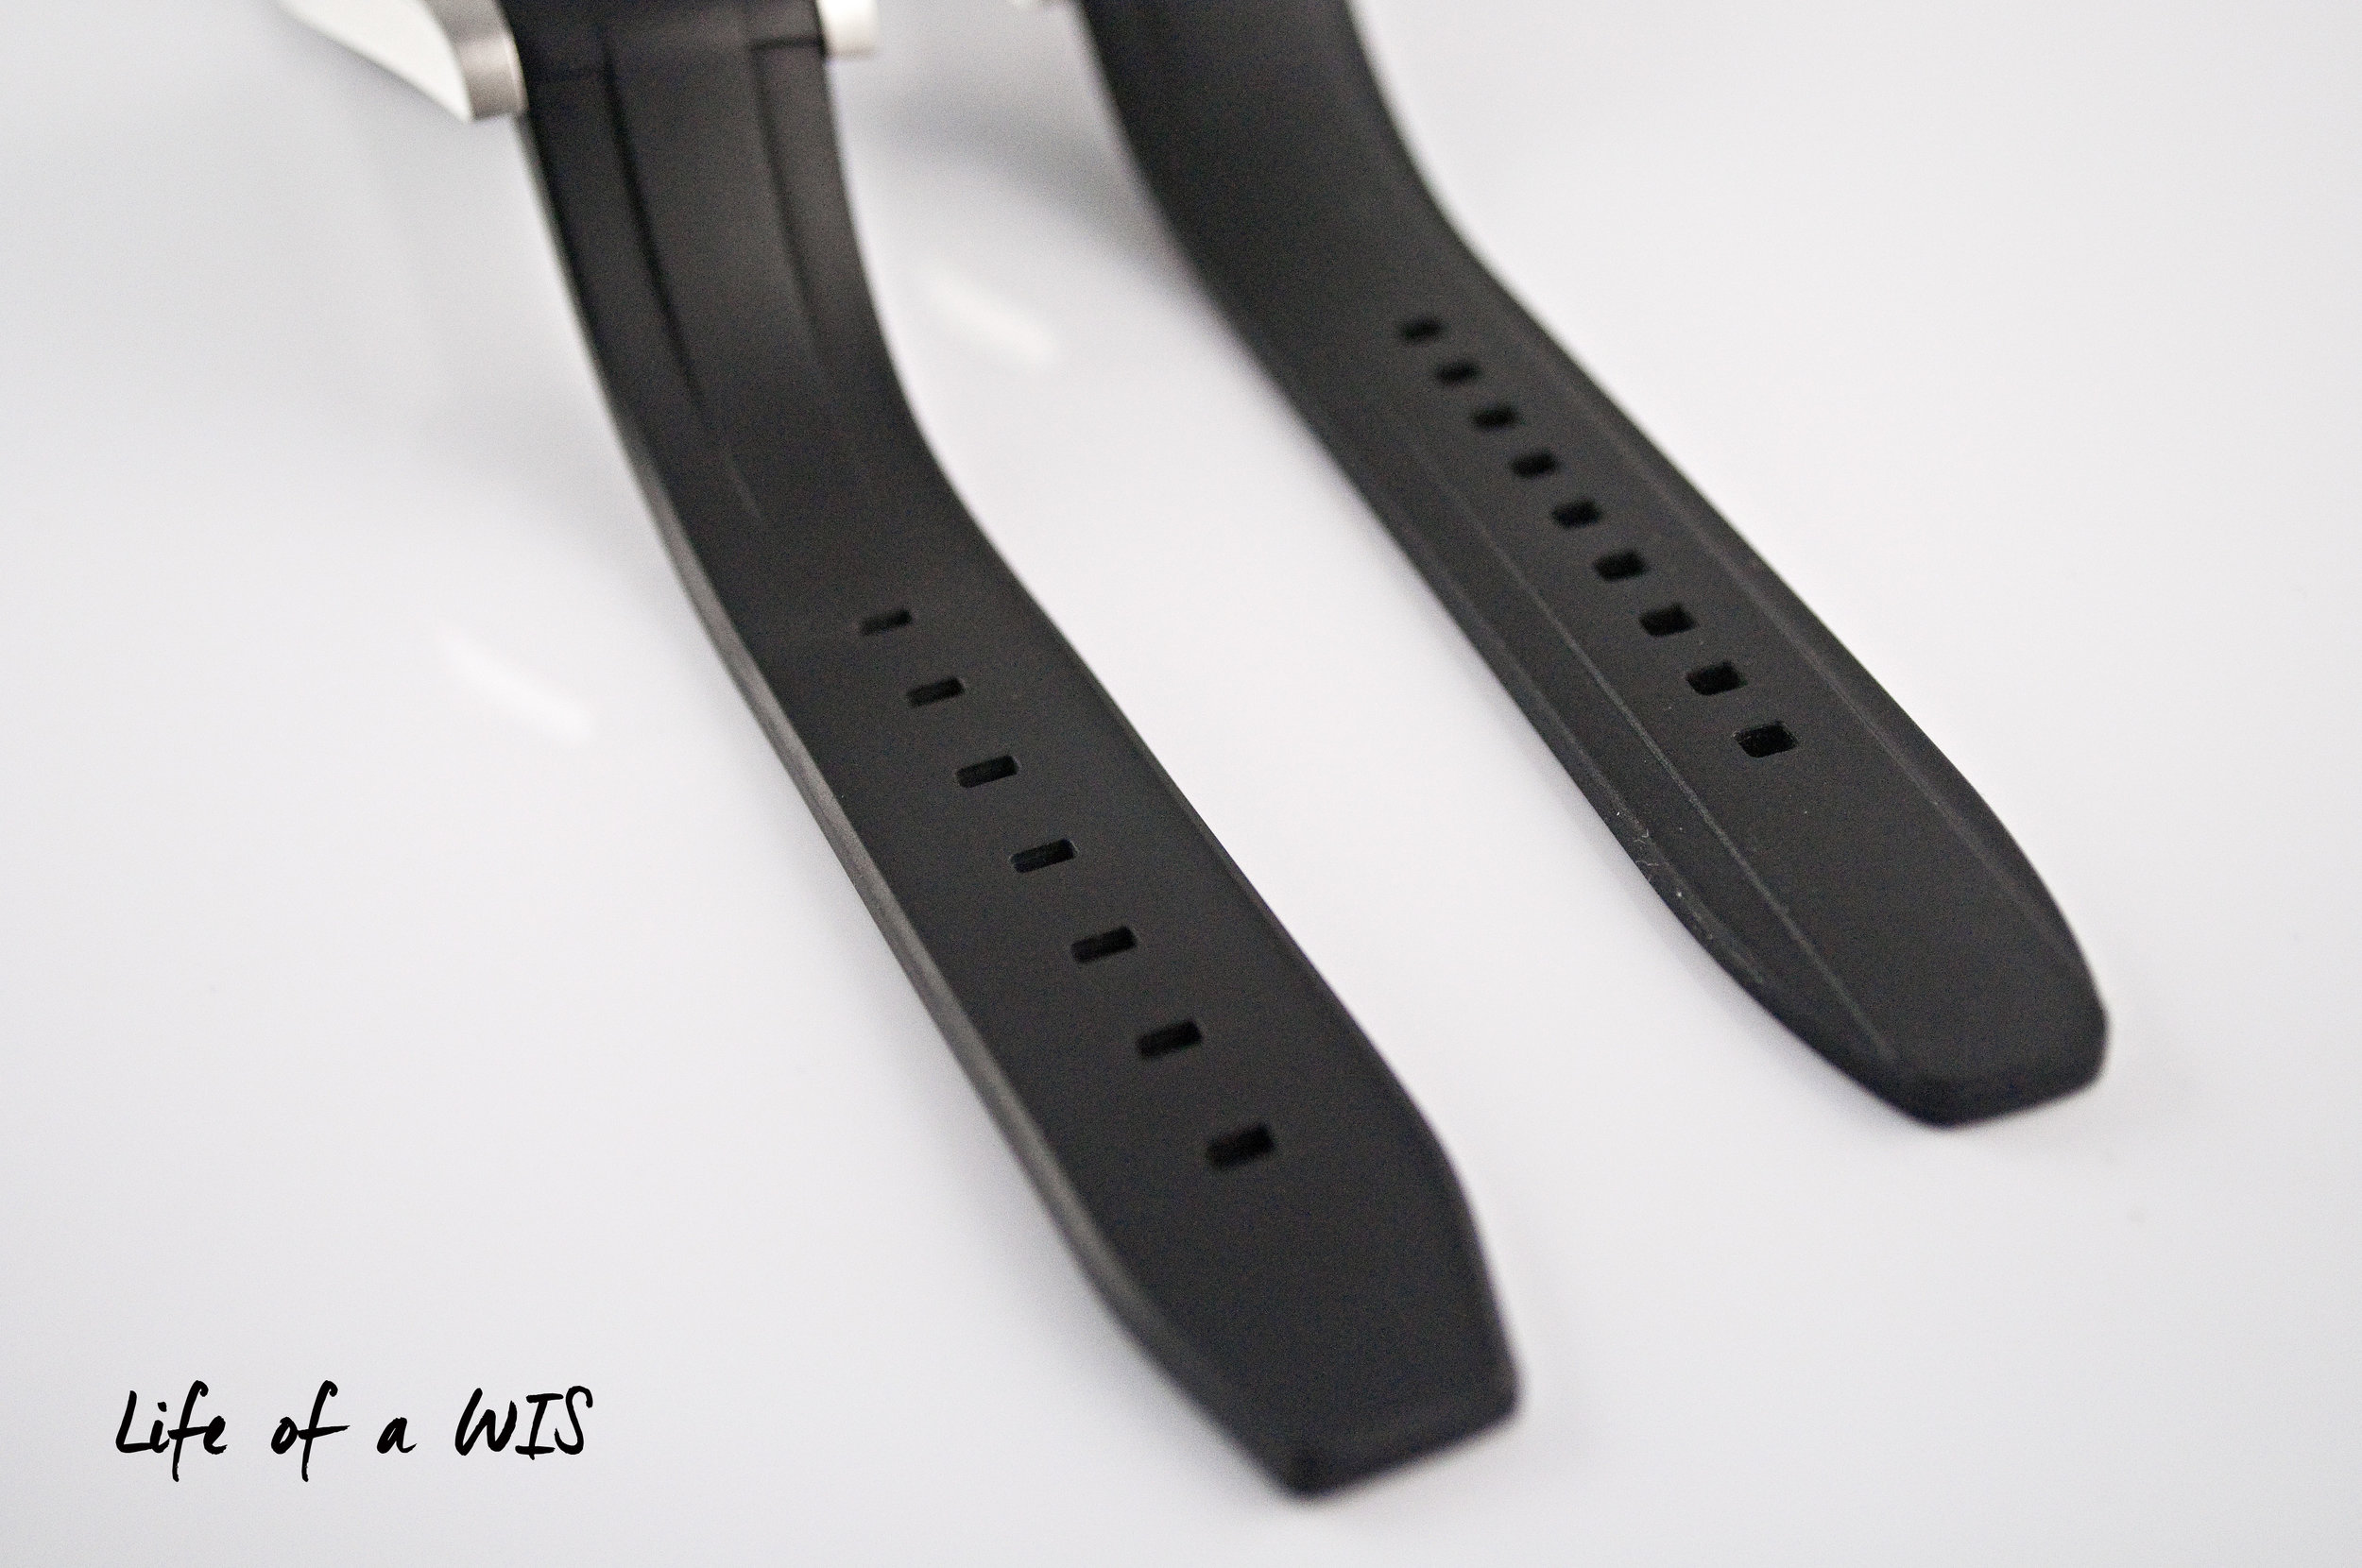 The raised middle section on the straps is where the design differs between the two brands. Rubber B on the left, Everest on the right.